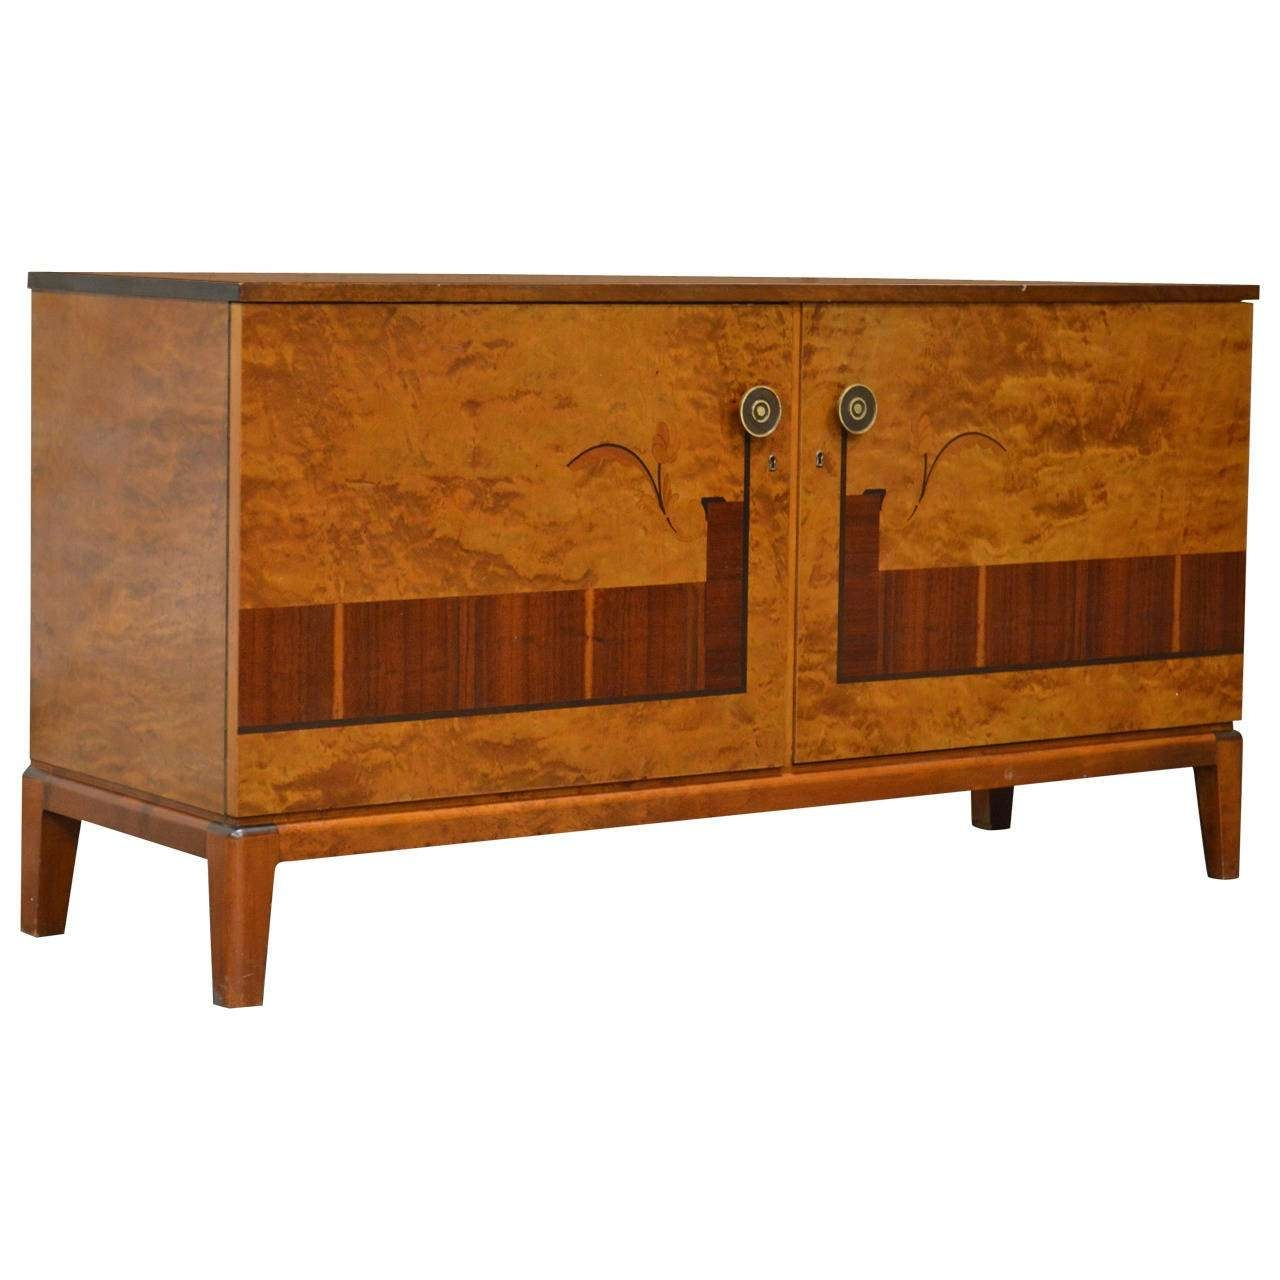 Swedish Art Deco Moderne Intarsia Sideboard Buffet Cabinet At 1stdibs With Art Deco Sideboards (View 19 of 20)